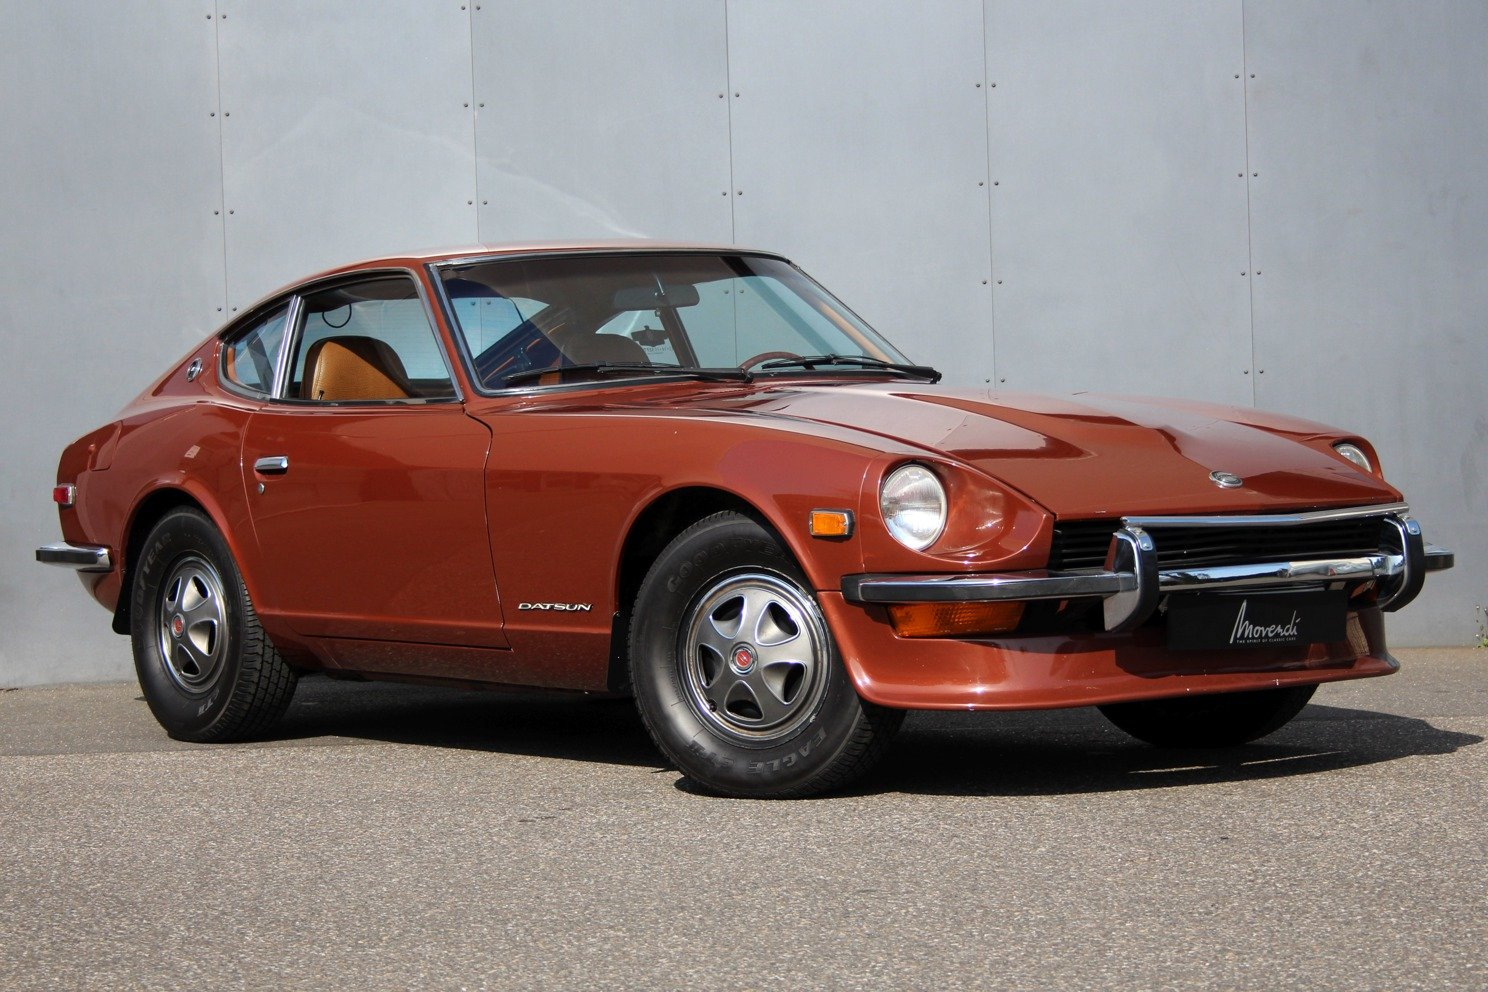 1973 Datsun 240Z LHD For Sale (picture 1 of 6)